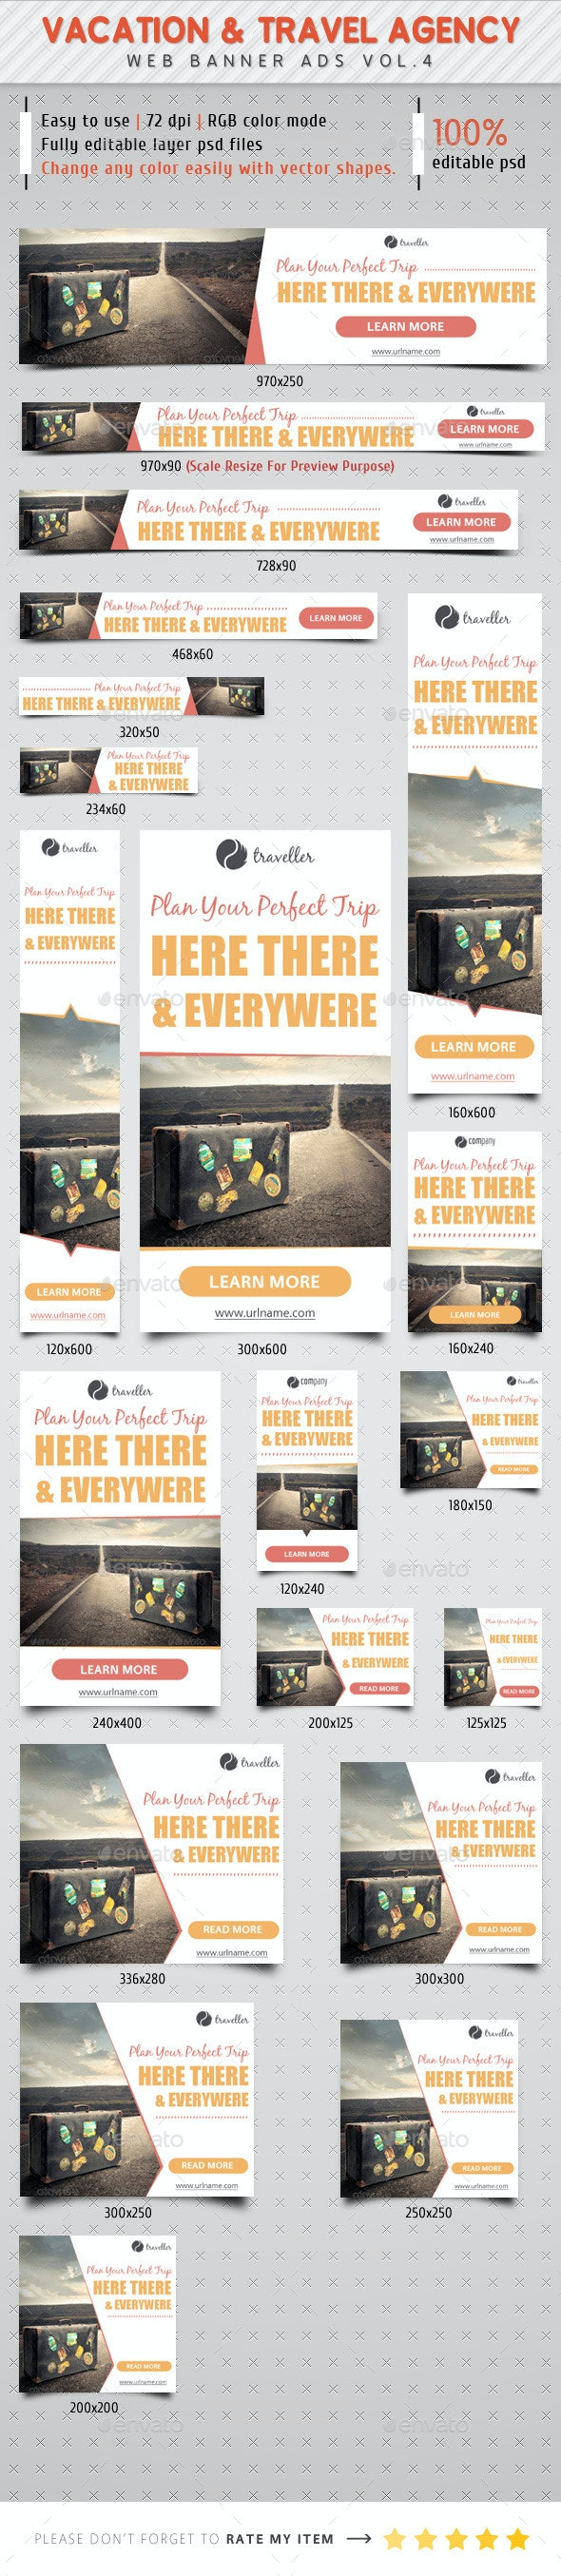 Vacation & Travel Agency Ads Vol.4 - Banners & Ads Web Elements